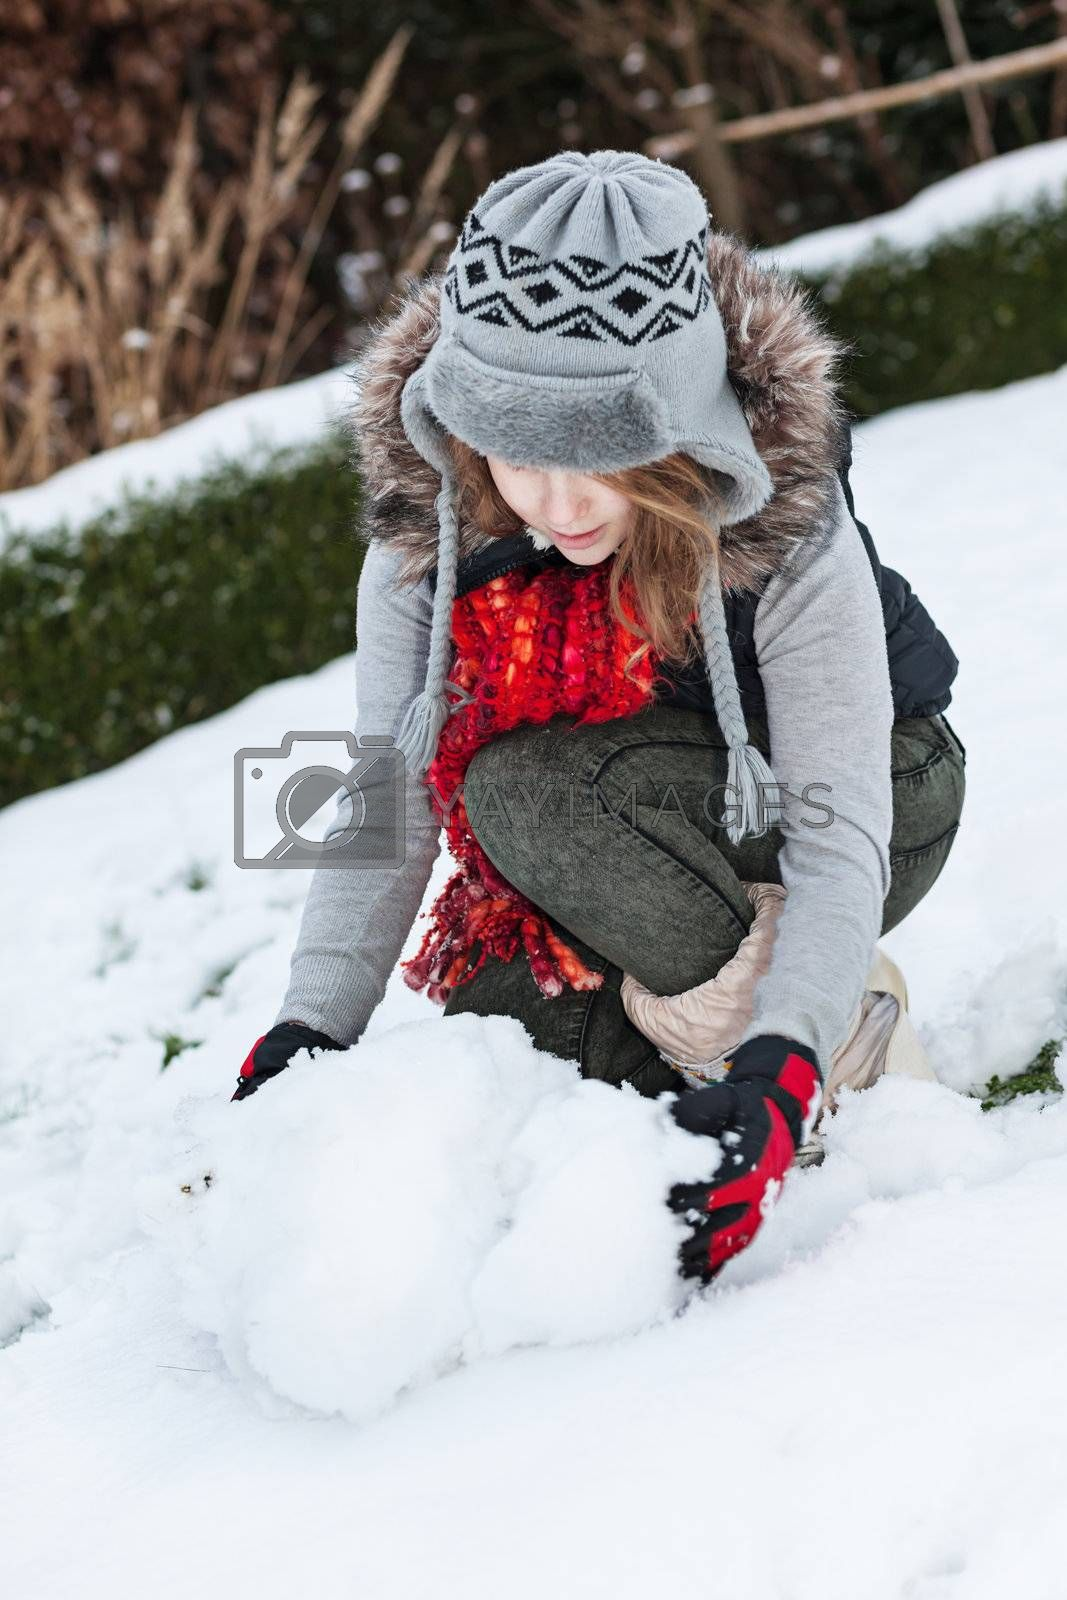 Teenager girl making snowman in snowy back yard